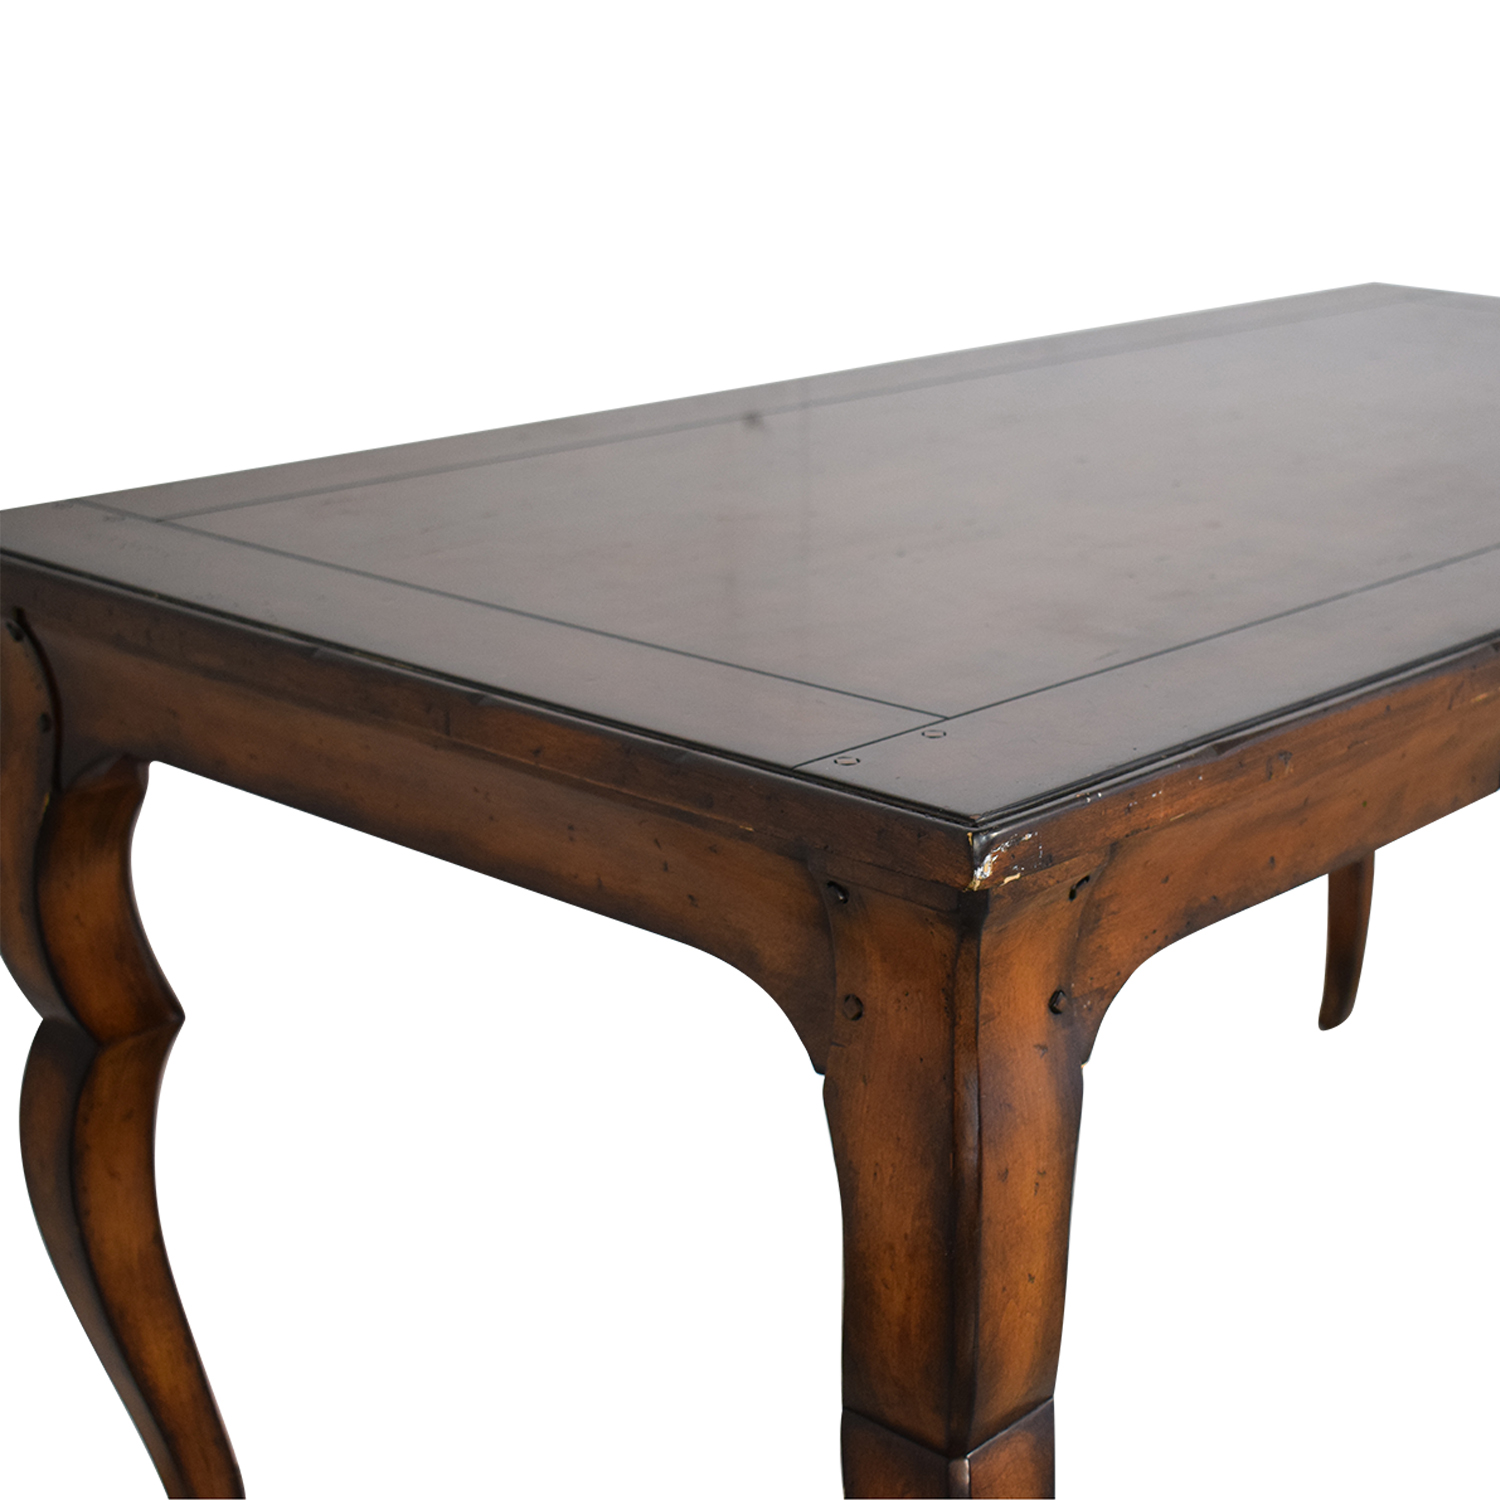 Woodbridge Furniture Woodbridge Furniture Writing Table used